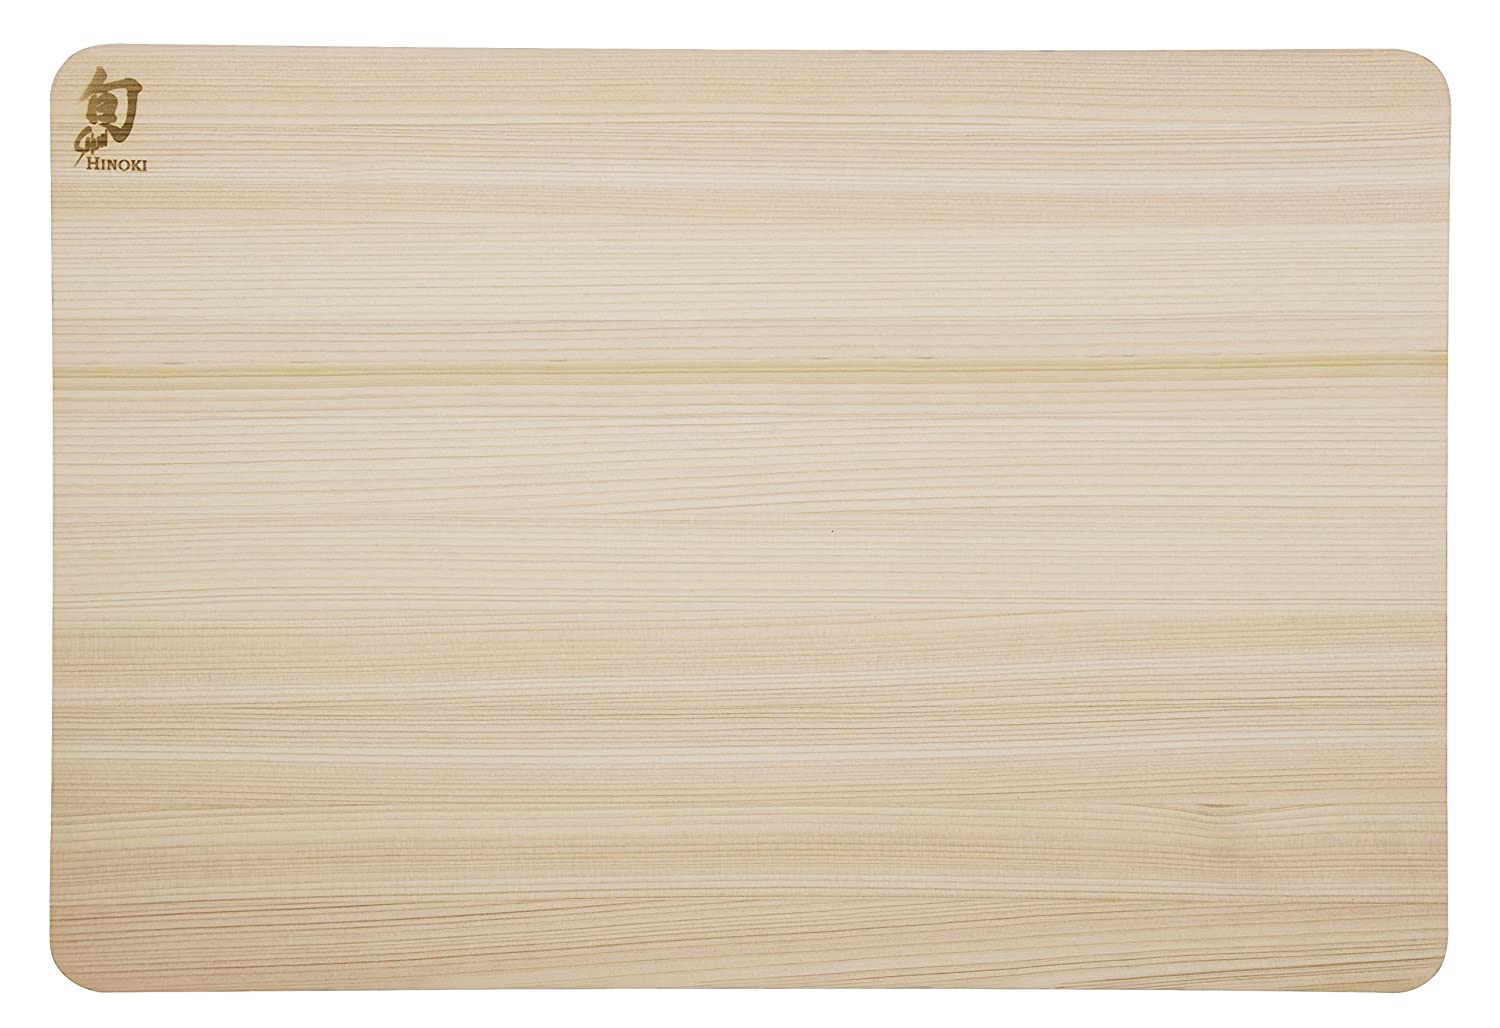 Shun Dm0817 Hinoki Cutting Board Large Home Kitchen Wiring For Front Component Speakersimg13661jpg